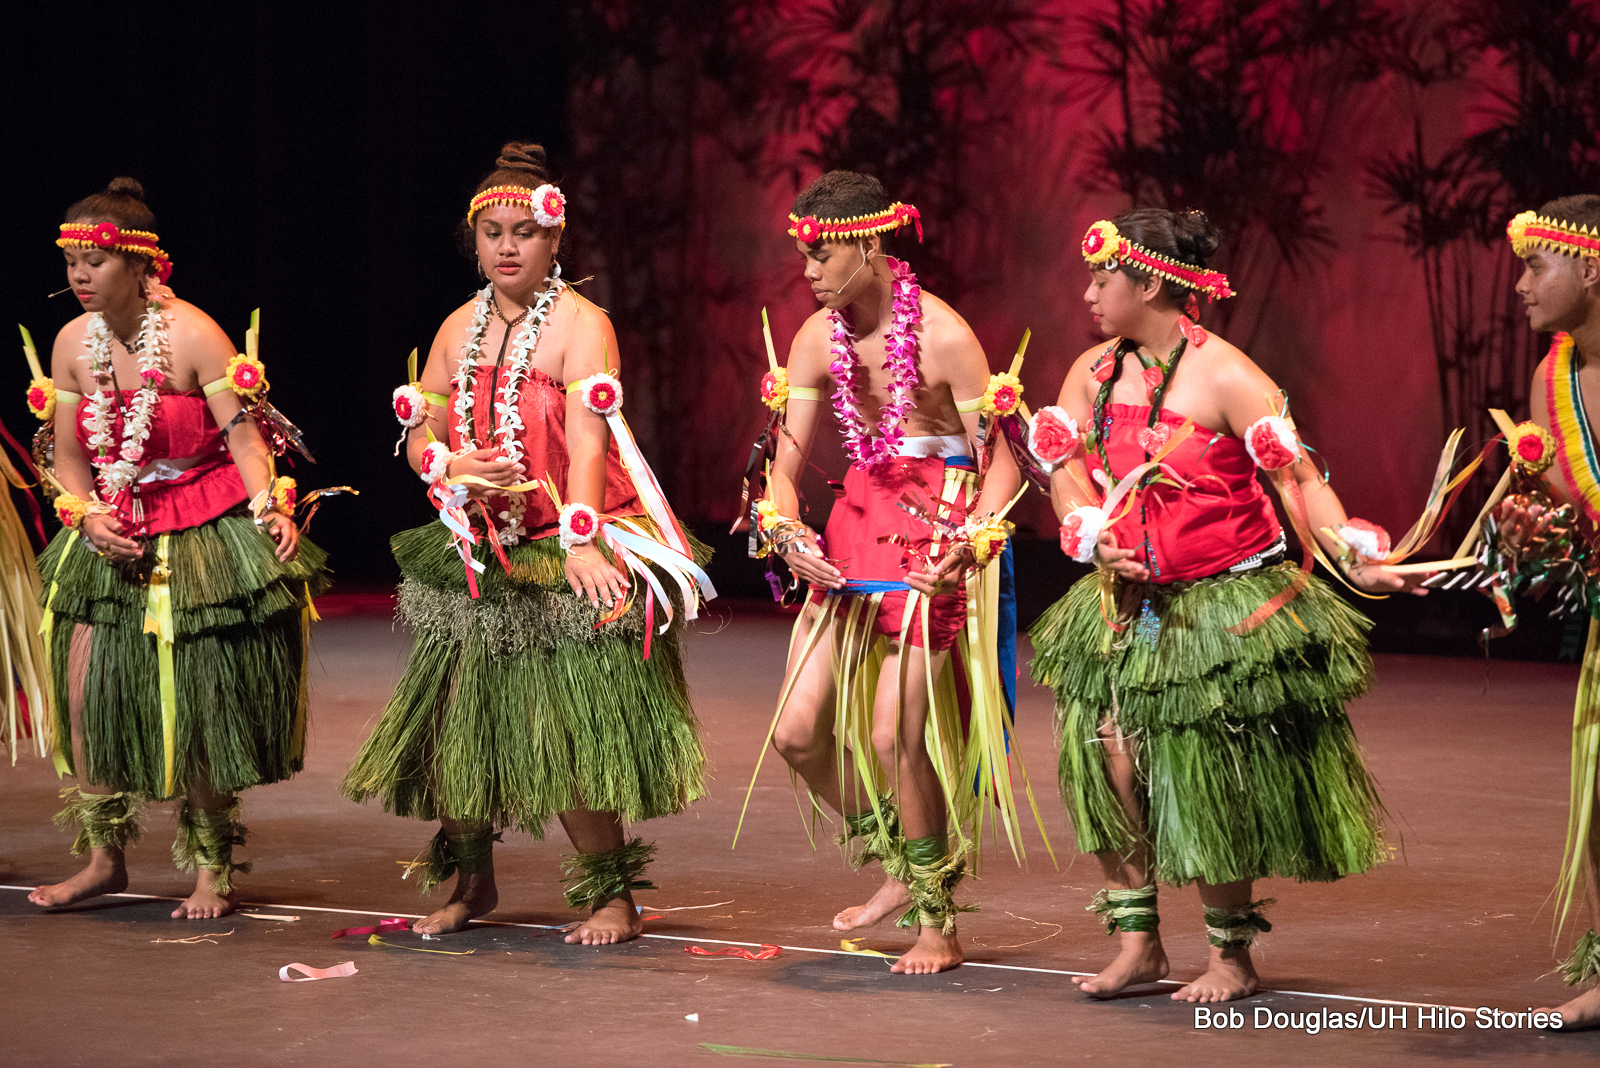 Large group of women and men, green ti and grass skirts, red tops, knees bent, all gesturing to their left, all chanting or singing.